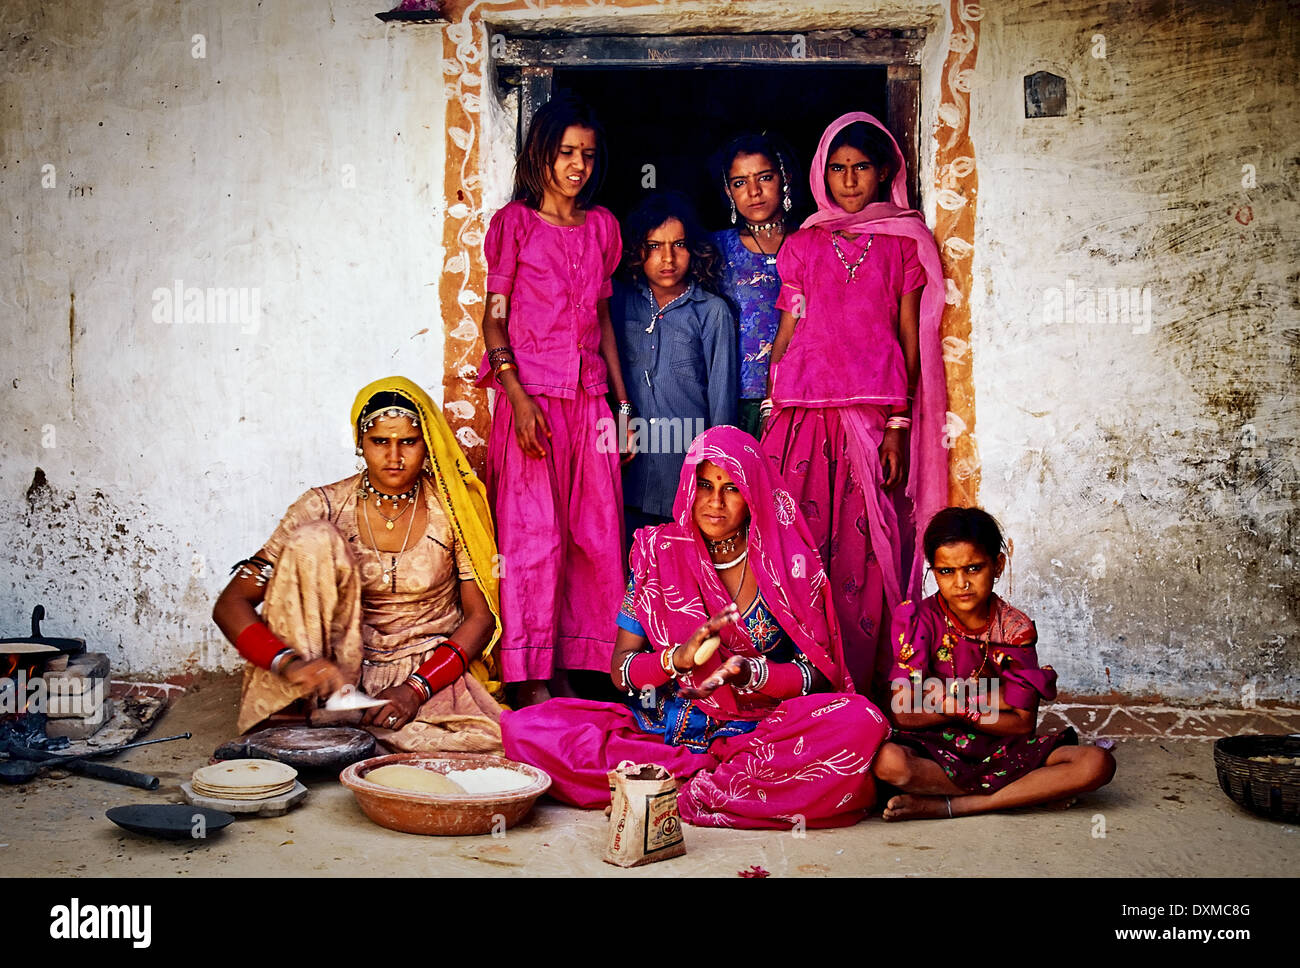 Indian village family in a doorway in a village near Jodhpur, India. Digitally Manipulated Image. Stock Photo